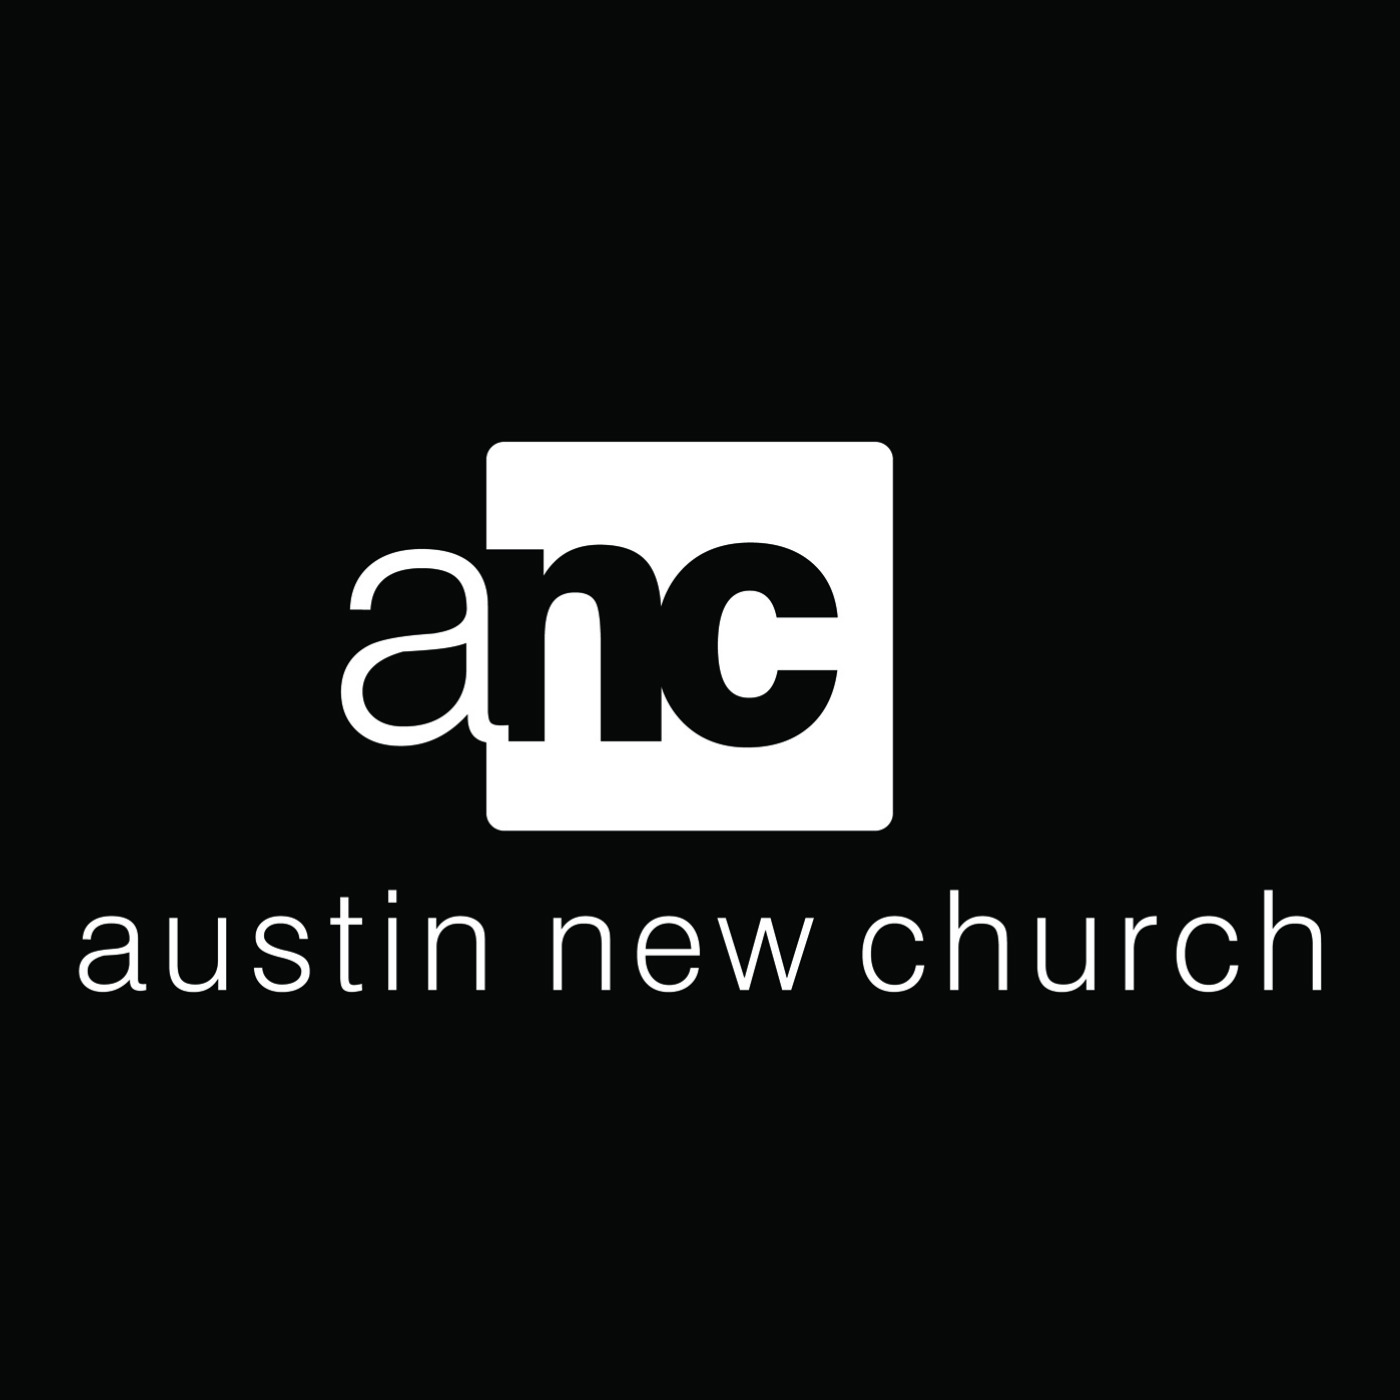 Austin New Church